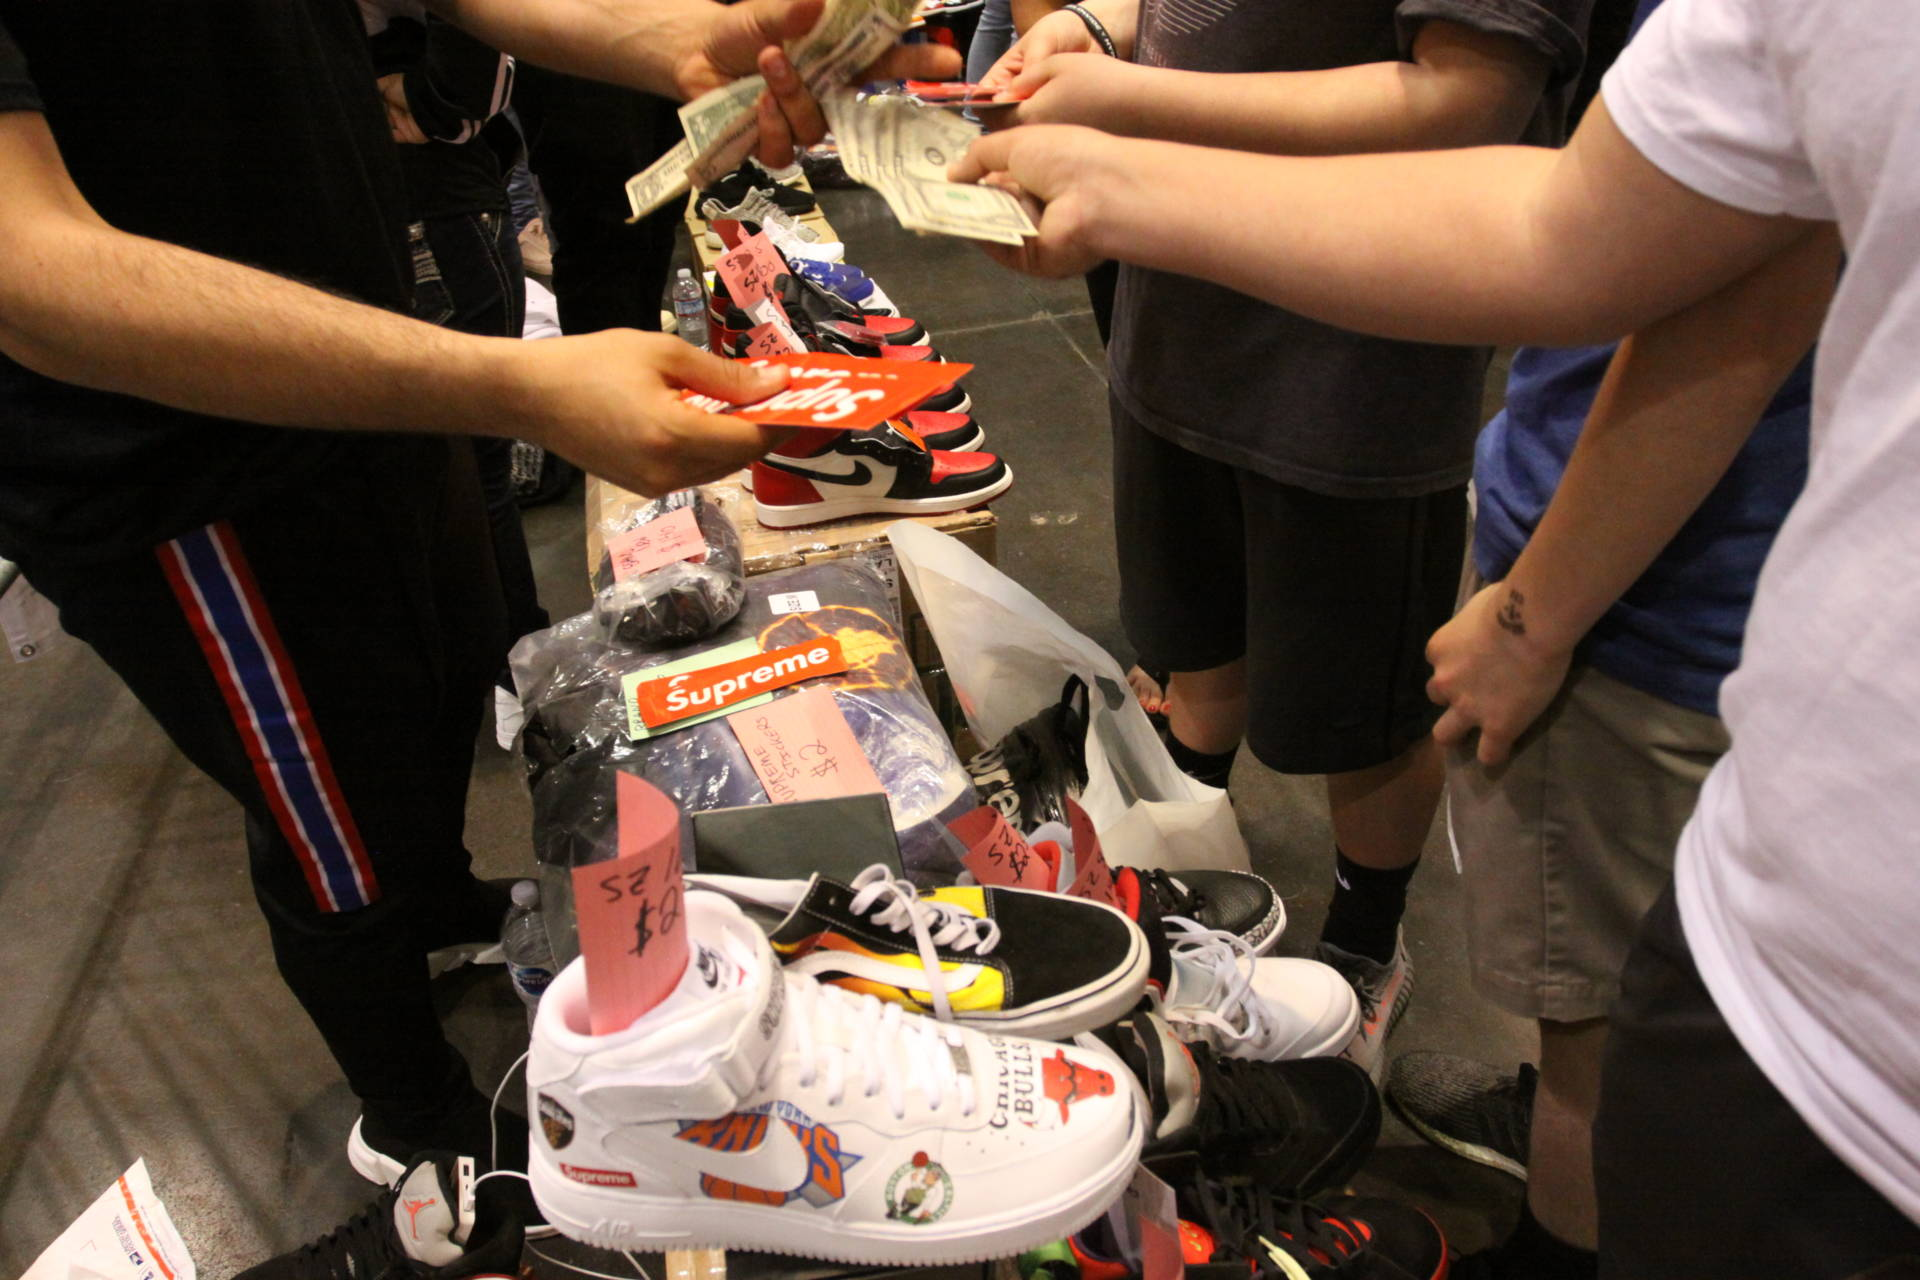 Buyers and sellers exchange goods for cash on the Sneaker Con Trading Pit floor.